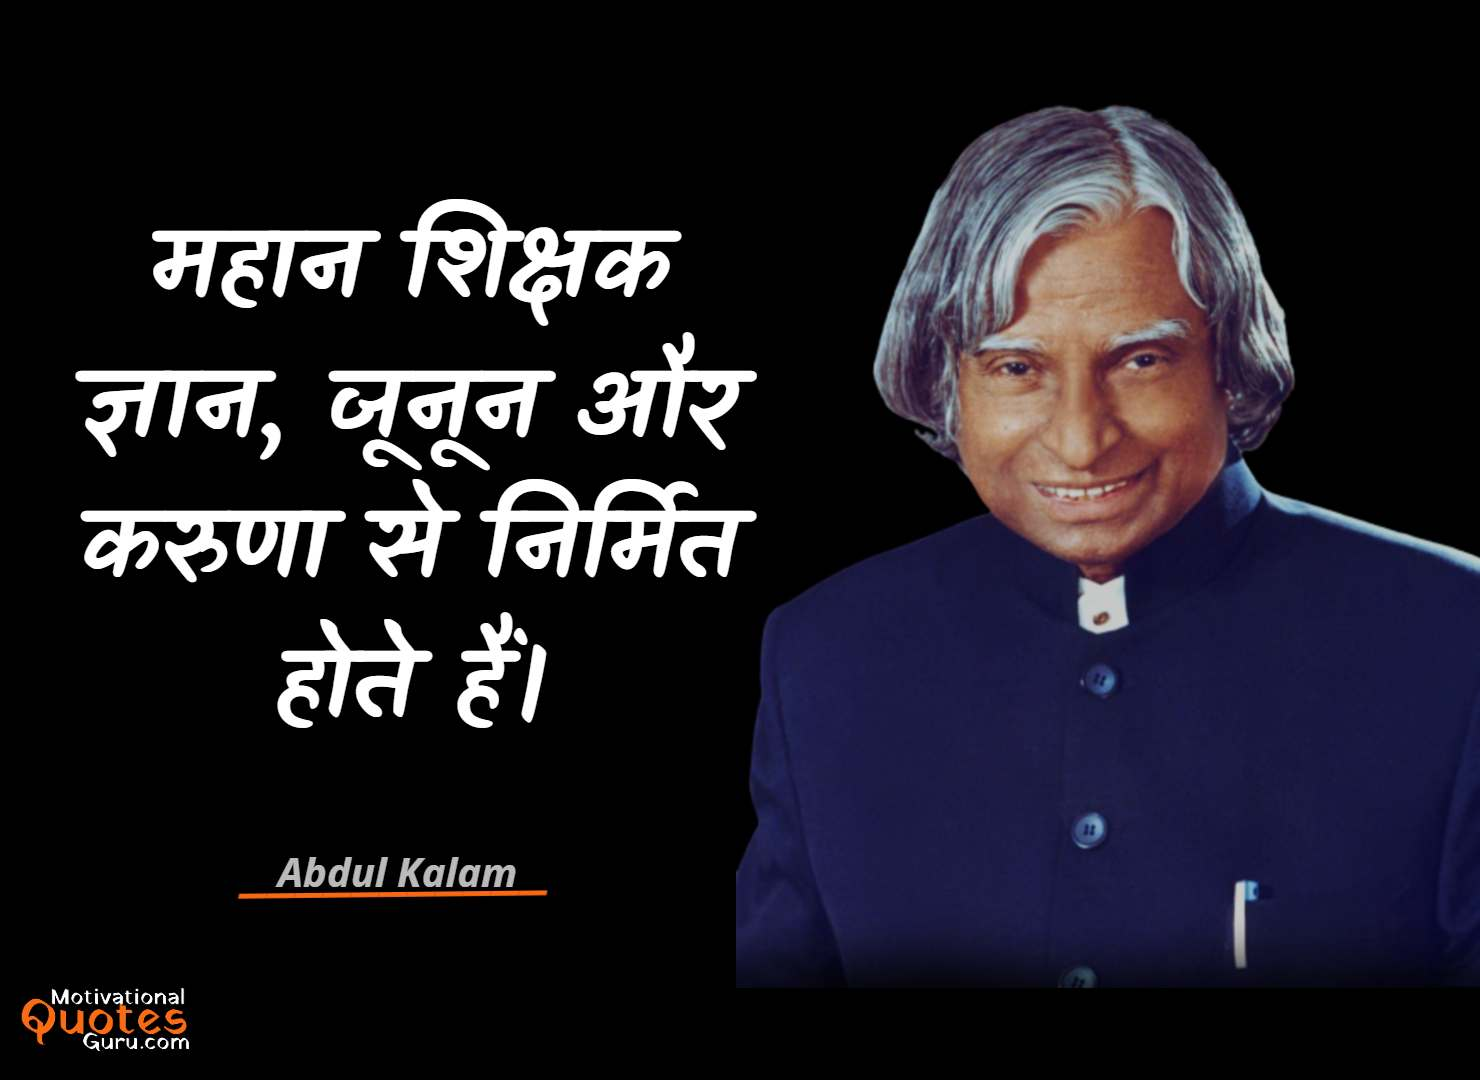 Apj Abdul Kalam Thoughts In Hindi For Students